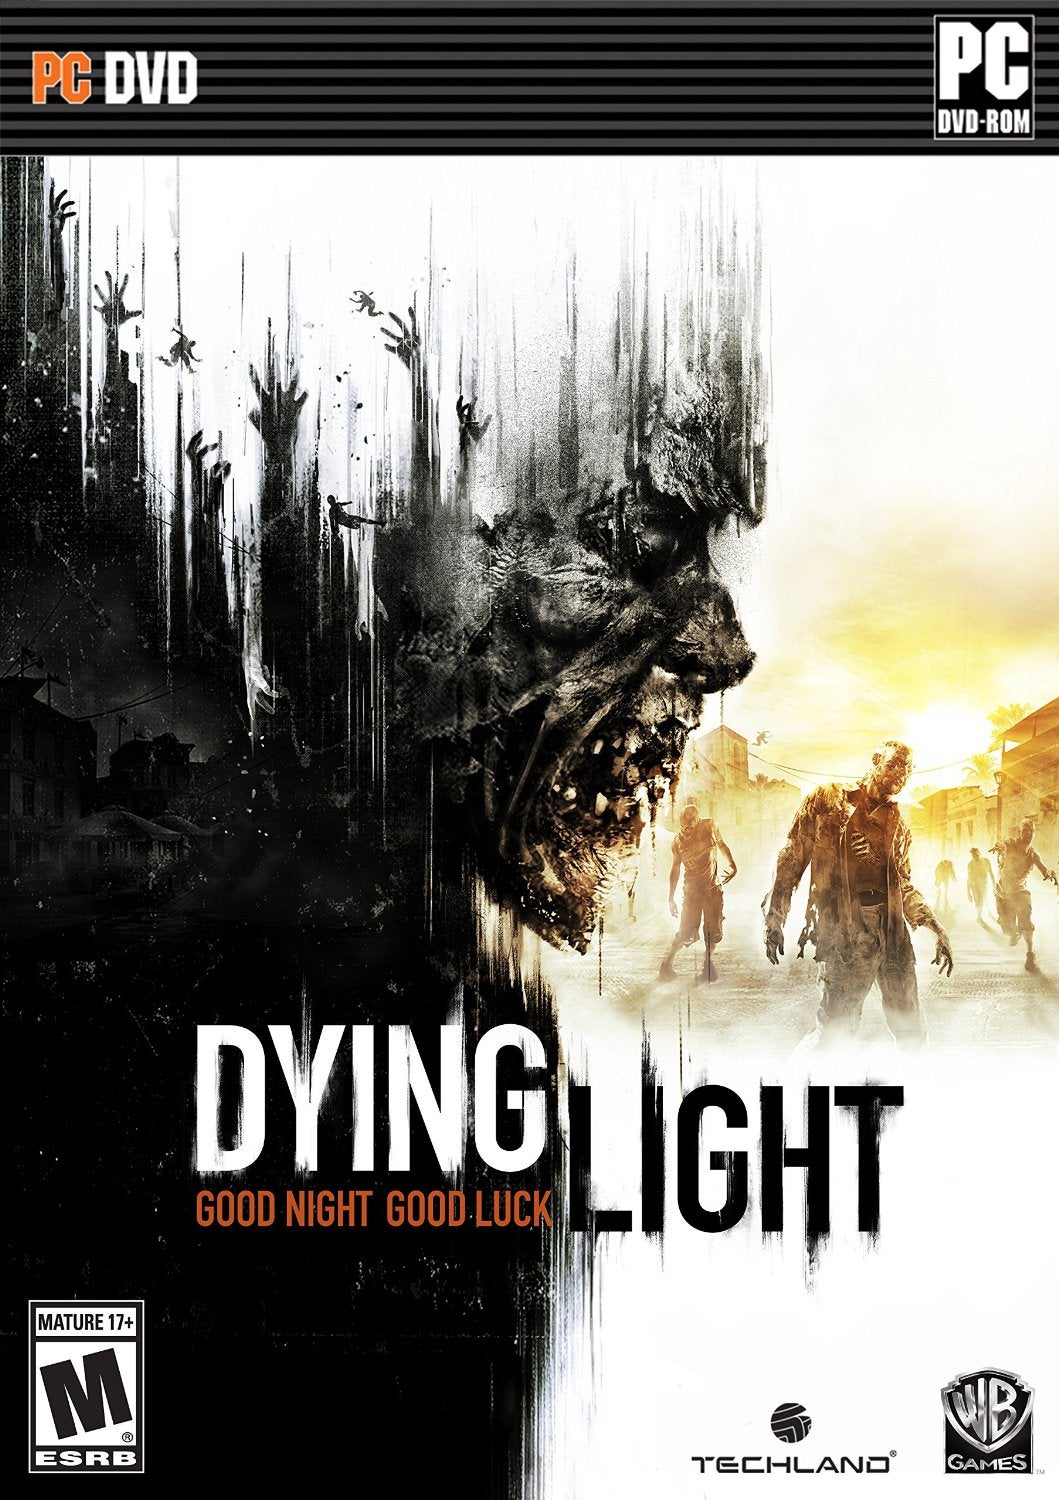 Dying Light Cheats Codes Unlockables PC IGN